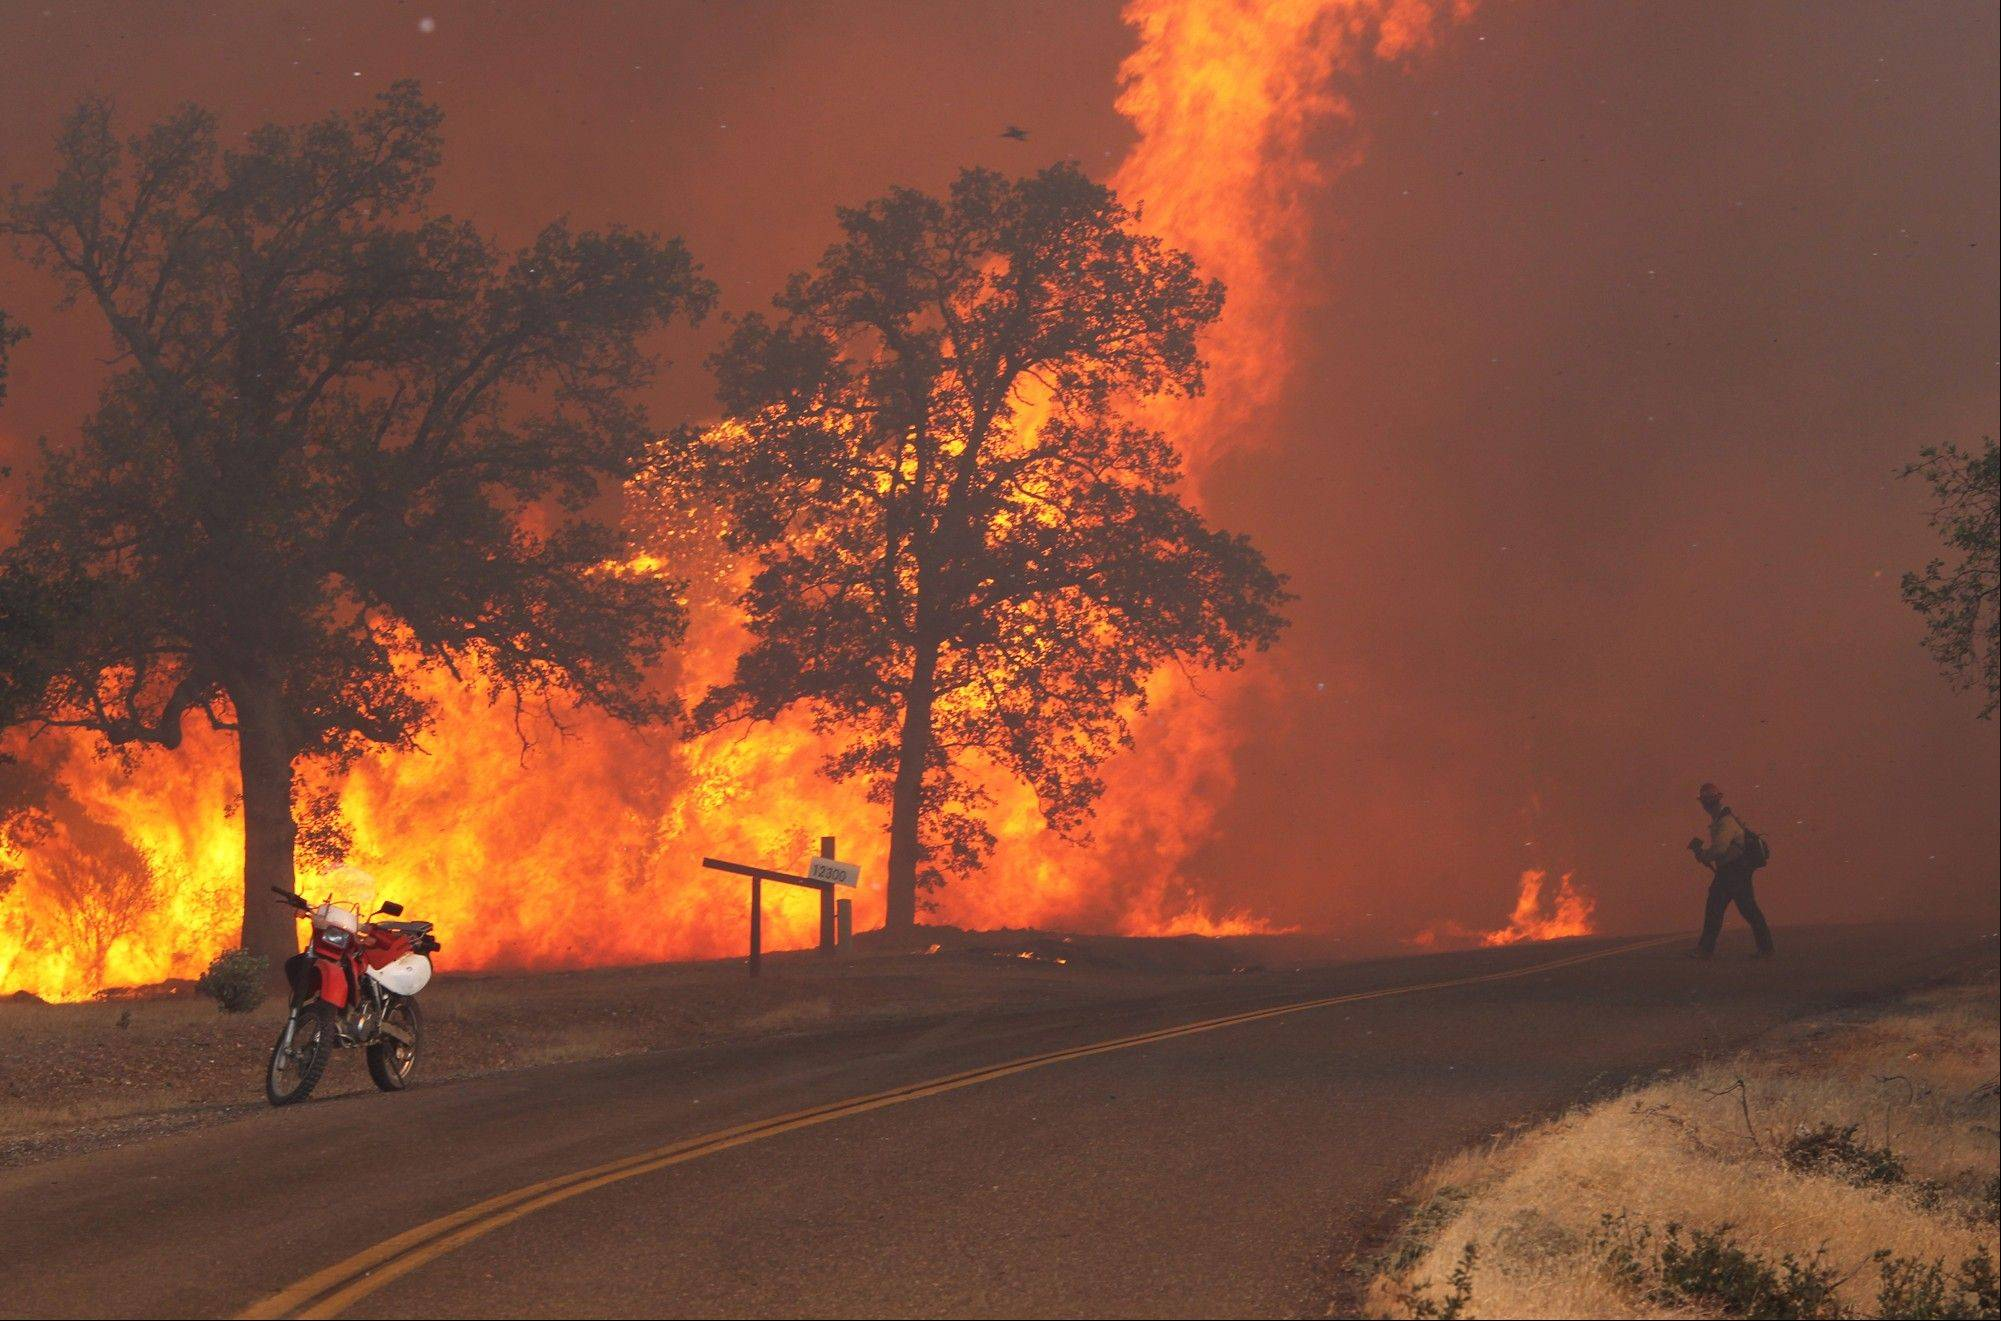 A firefighter works the Clover Fire in Anderson, Calif., on Monday, Sept. 9, 2013, on Gas Point Road. The fire destroyed at least 30 buildings, officials said Tuesday.